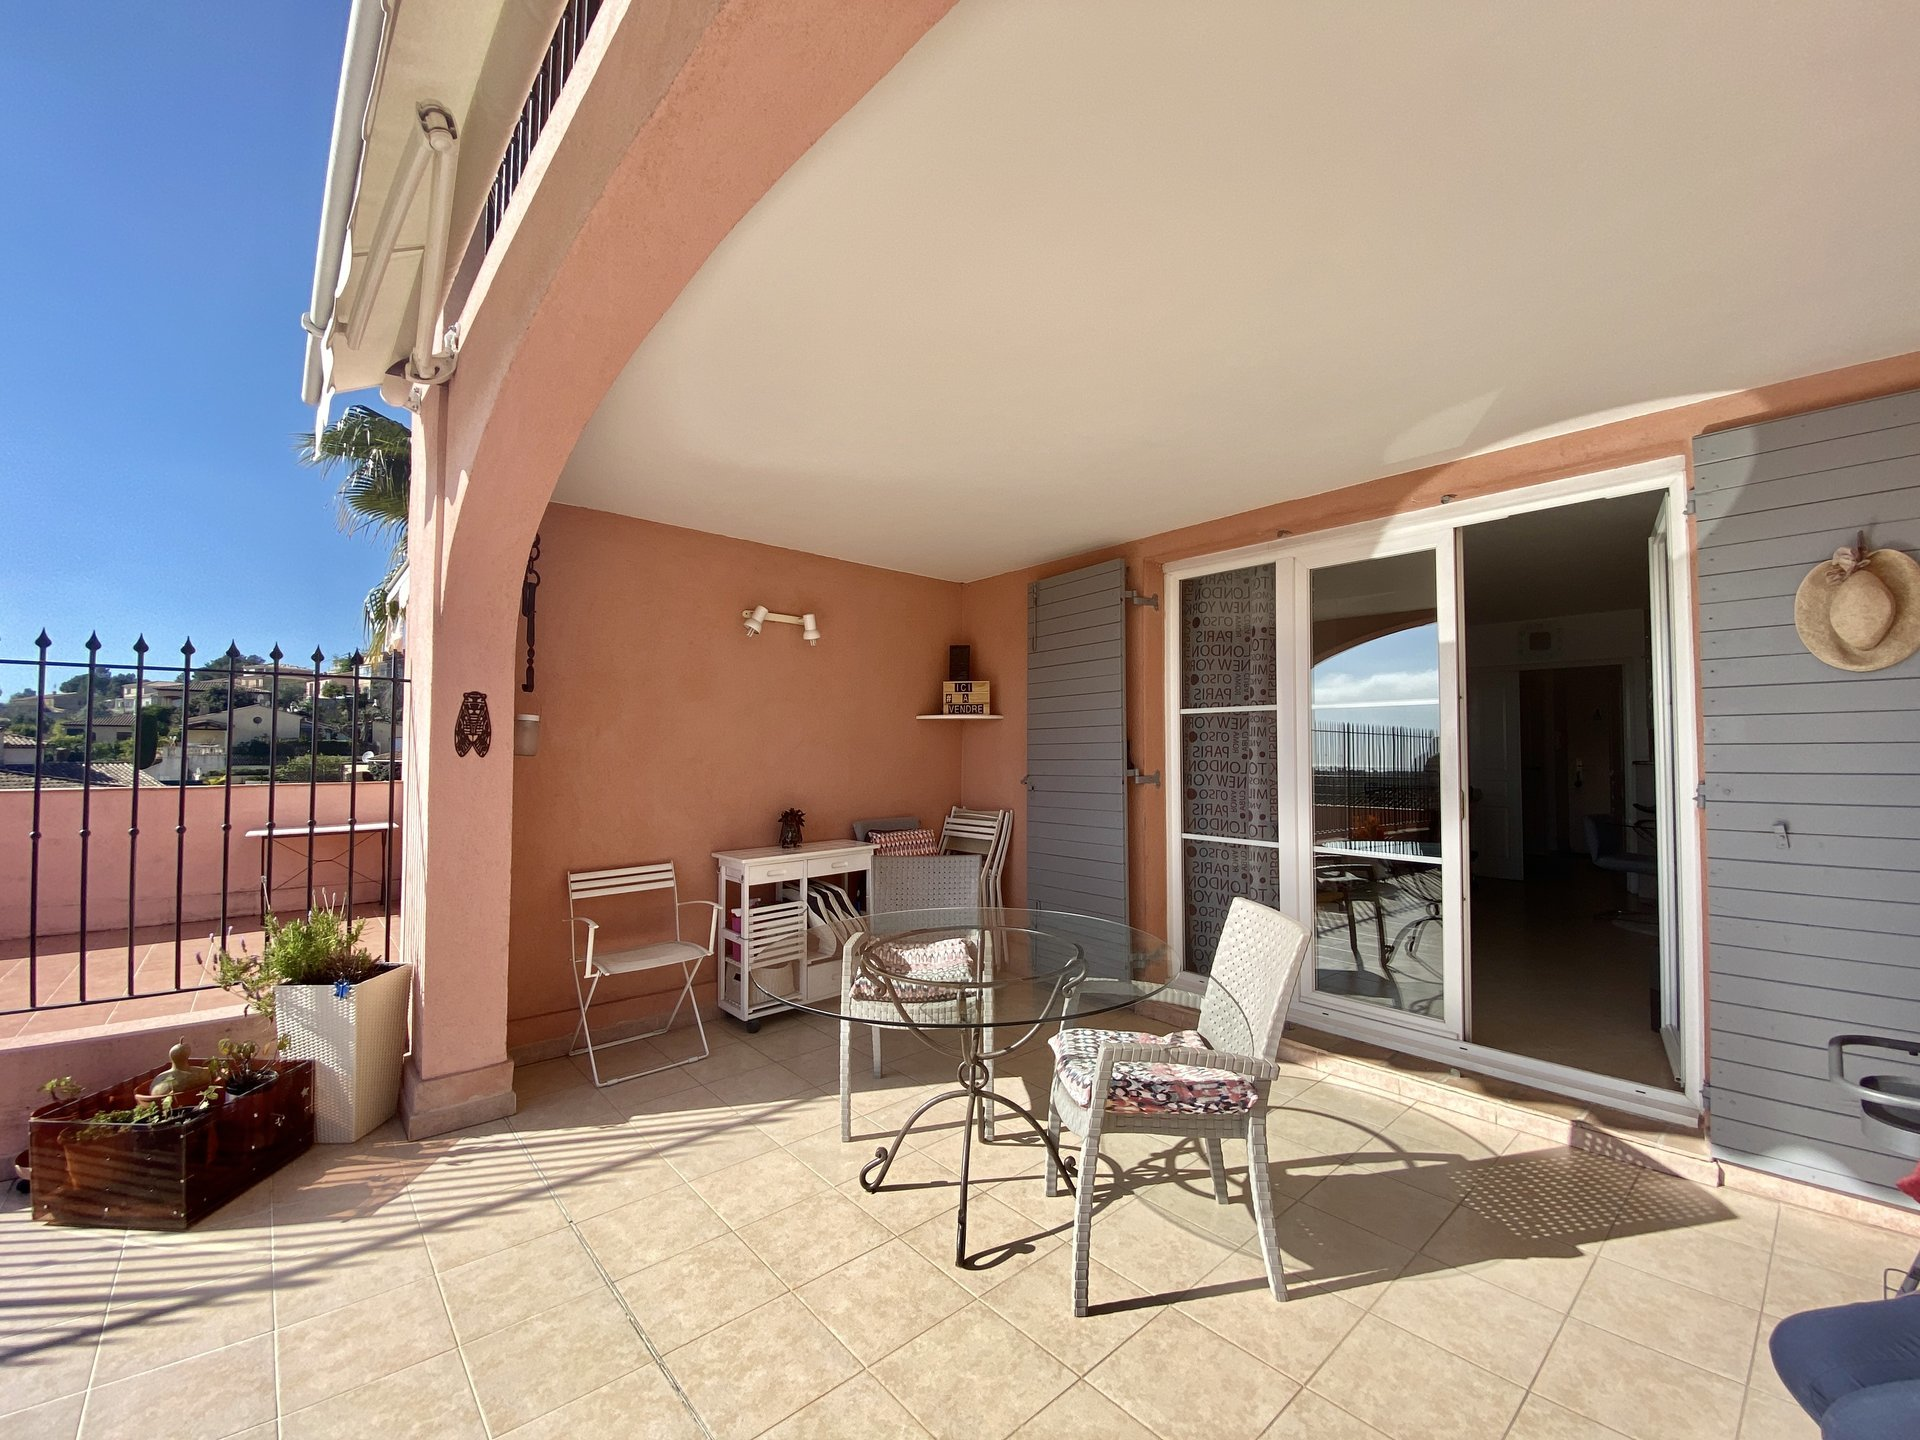 Duplex with garage, sea view, large terrace, swimming pool, facing south